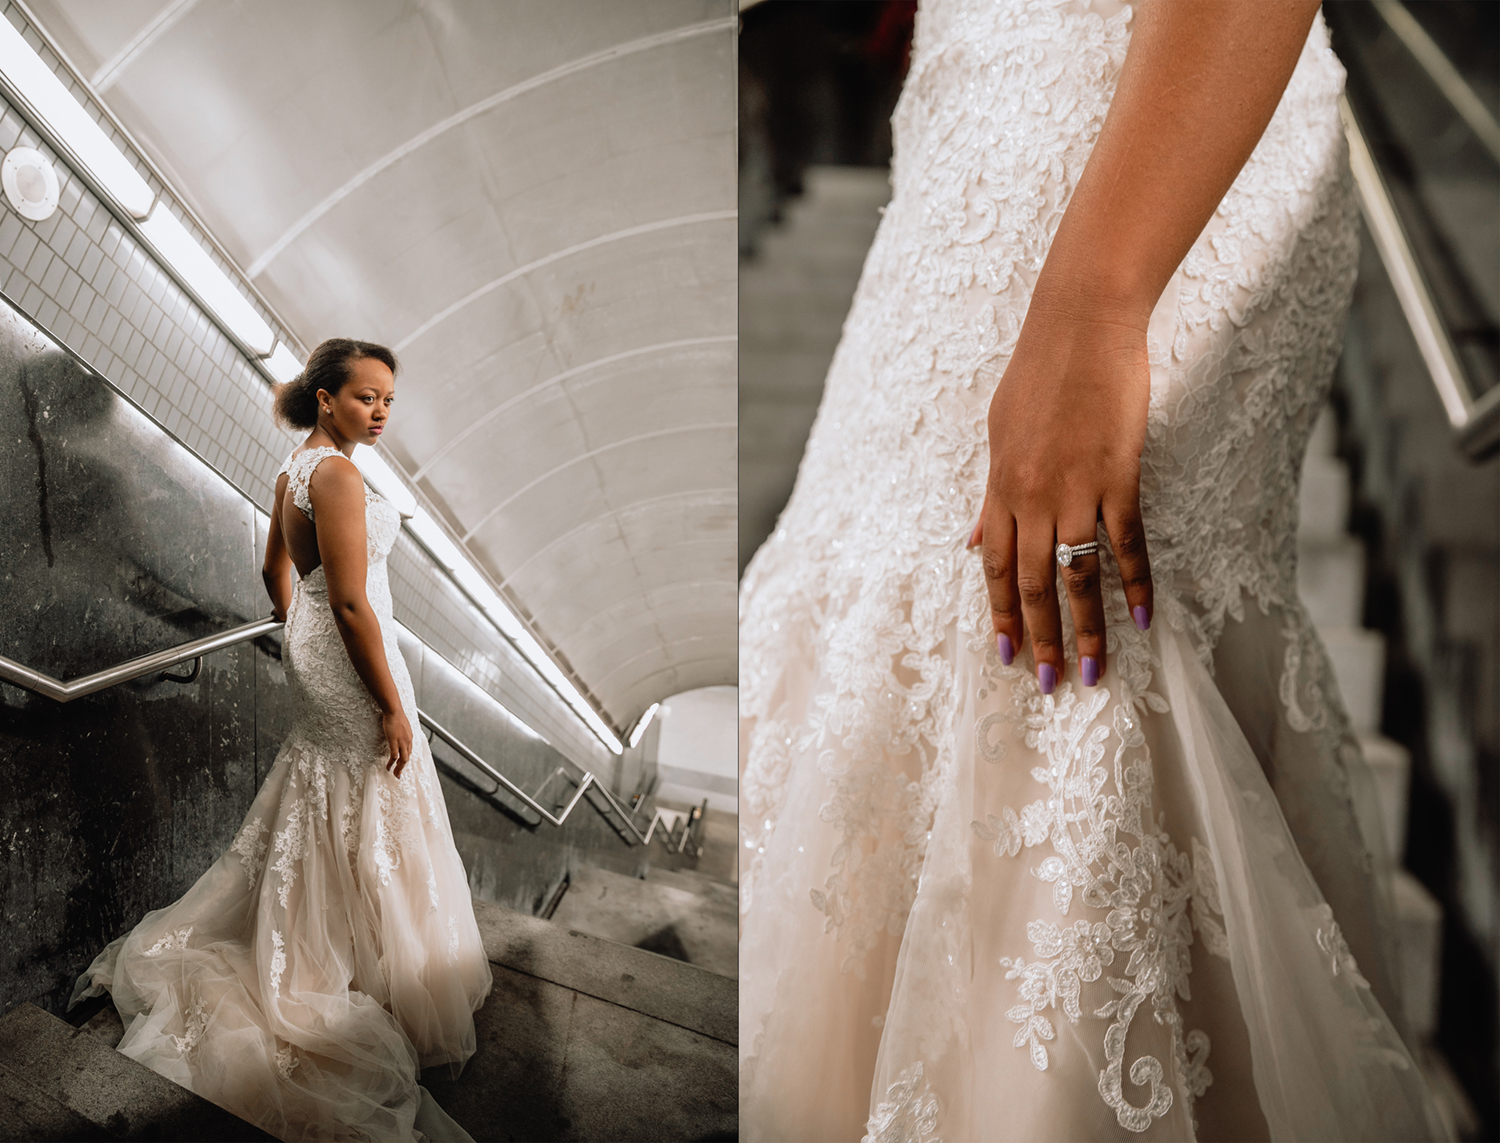 Peachtree Station_Marta_Bridal_Portraits3.jpg